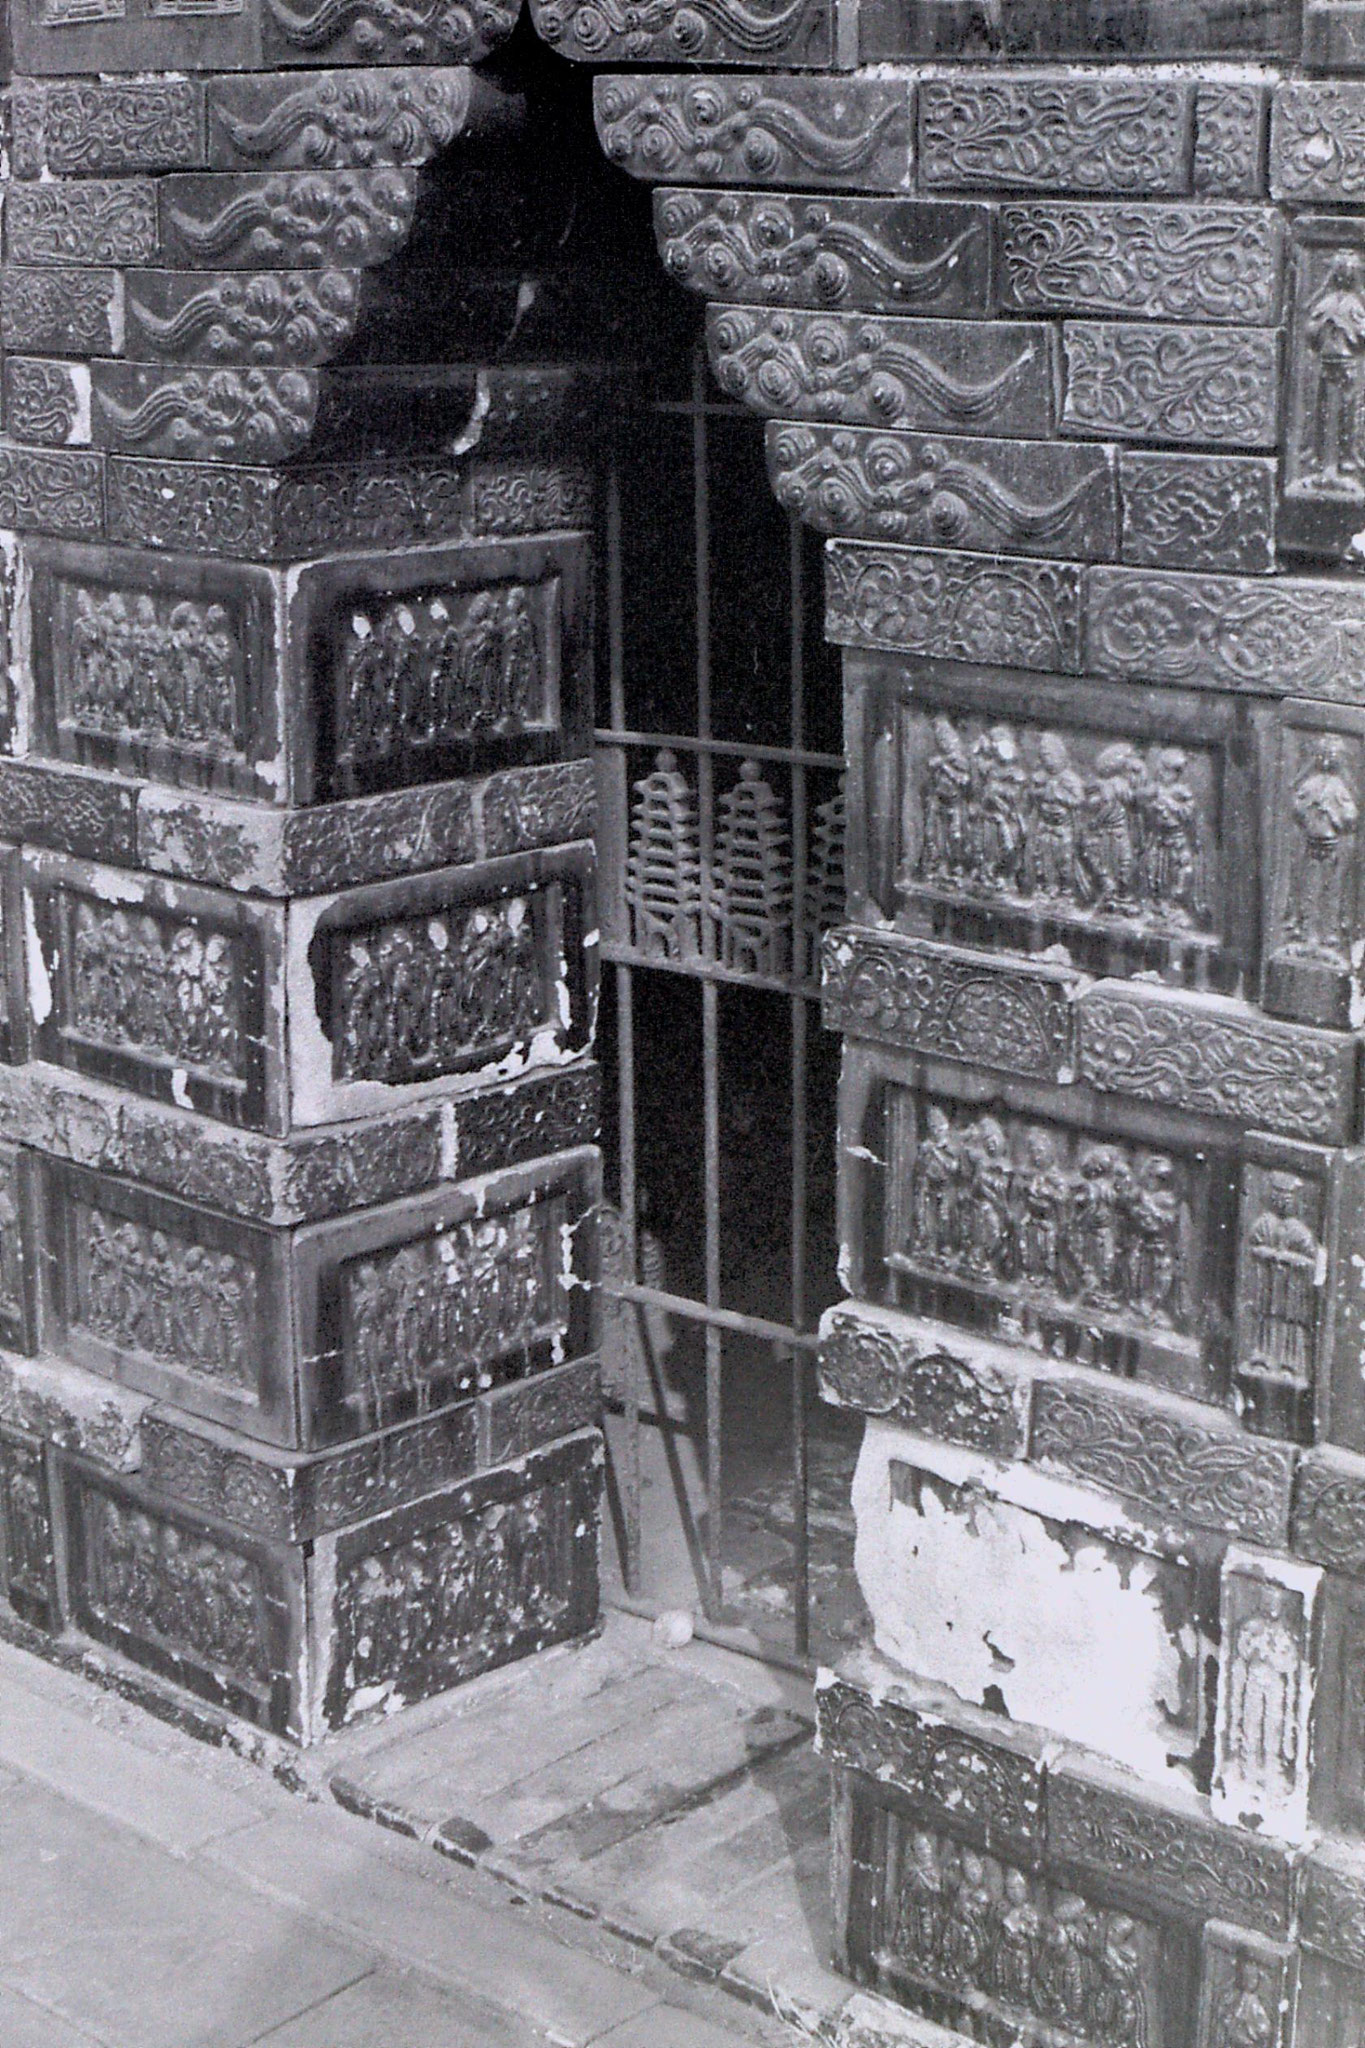 25/2/1989: 2: Kaifeng, detail on Iron Pagoda